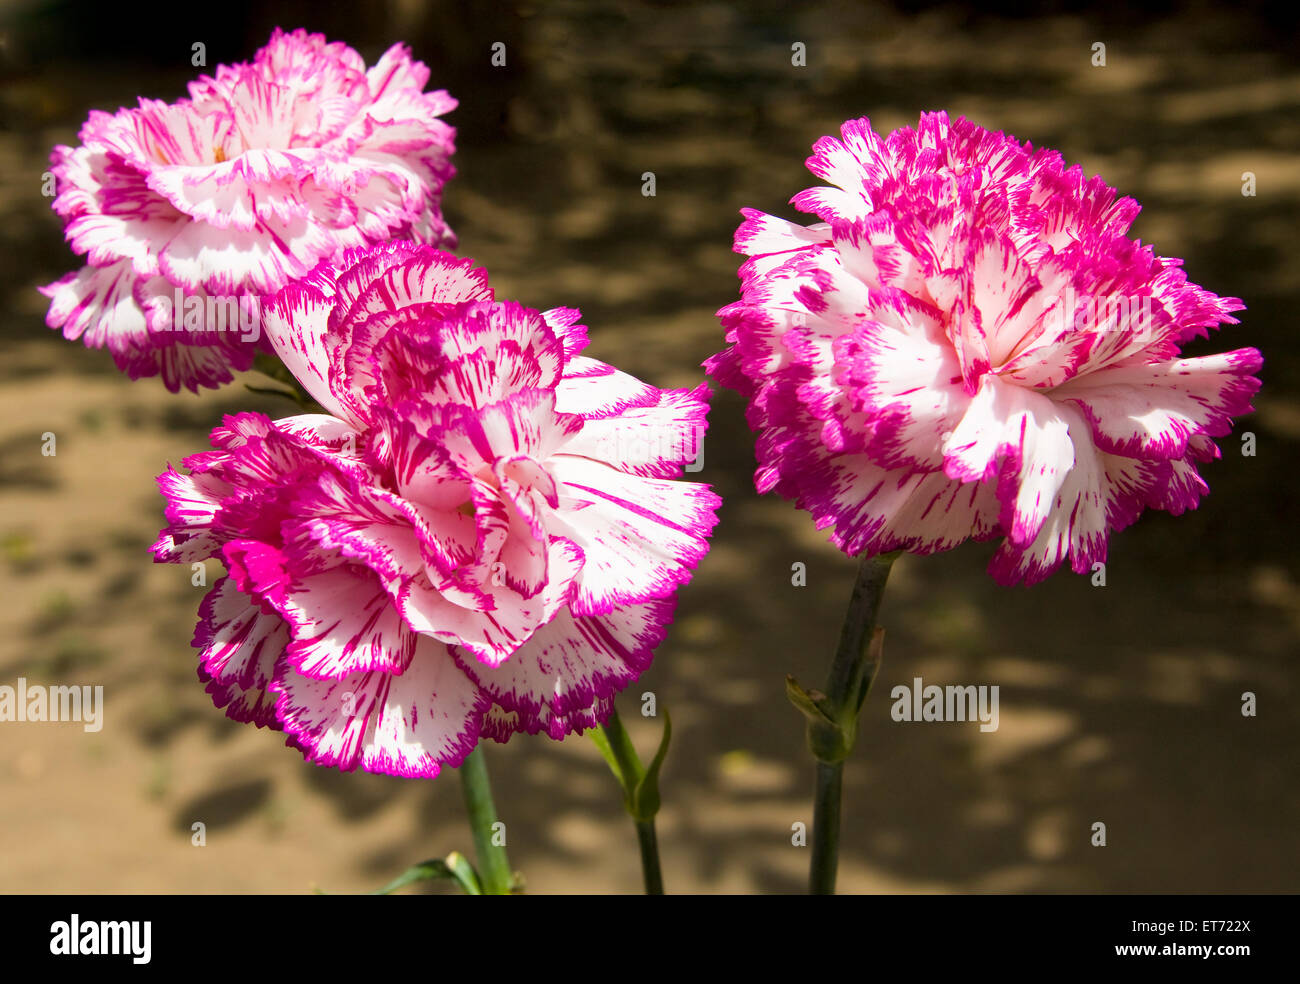 Three Big Flowers Garden Carnation Of White And Pink Mixed Coloures